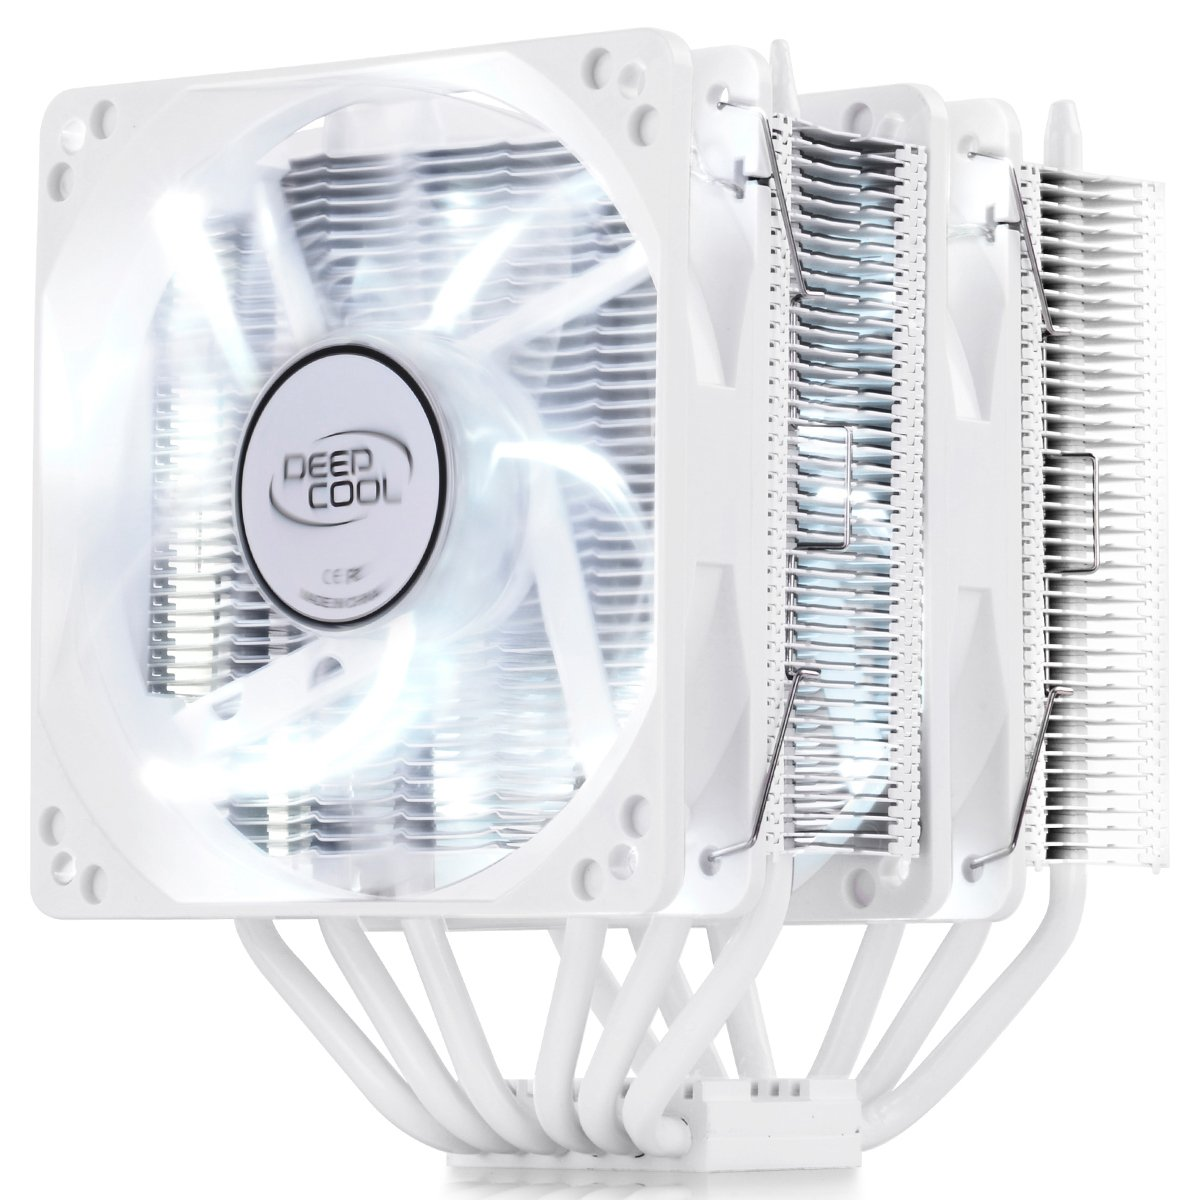 DeepCool NEPTWIN white version CPU Cooler 6 Heat pipes Twin-tower Heatsink Dual 120mm white LED Fans (NEPTWIN WHITE), AM4 Compatible by DEEP COOL